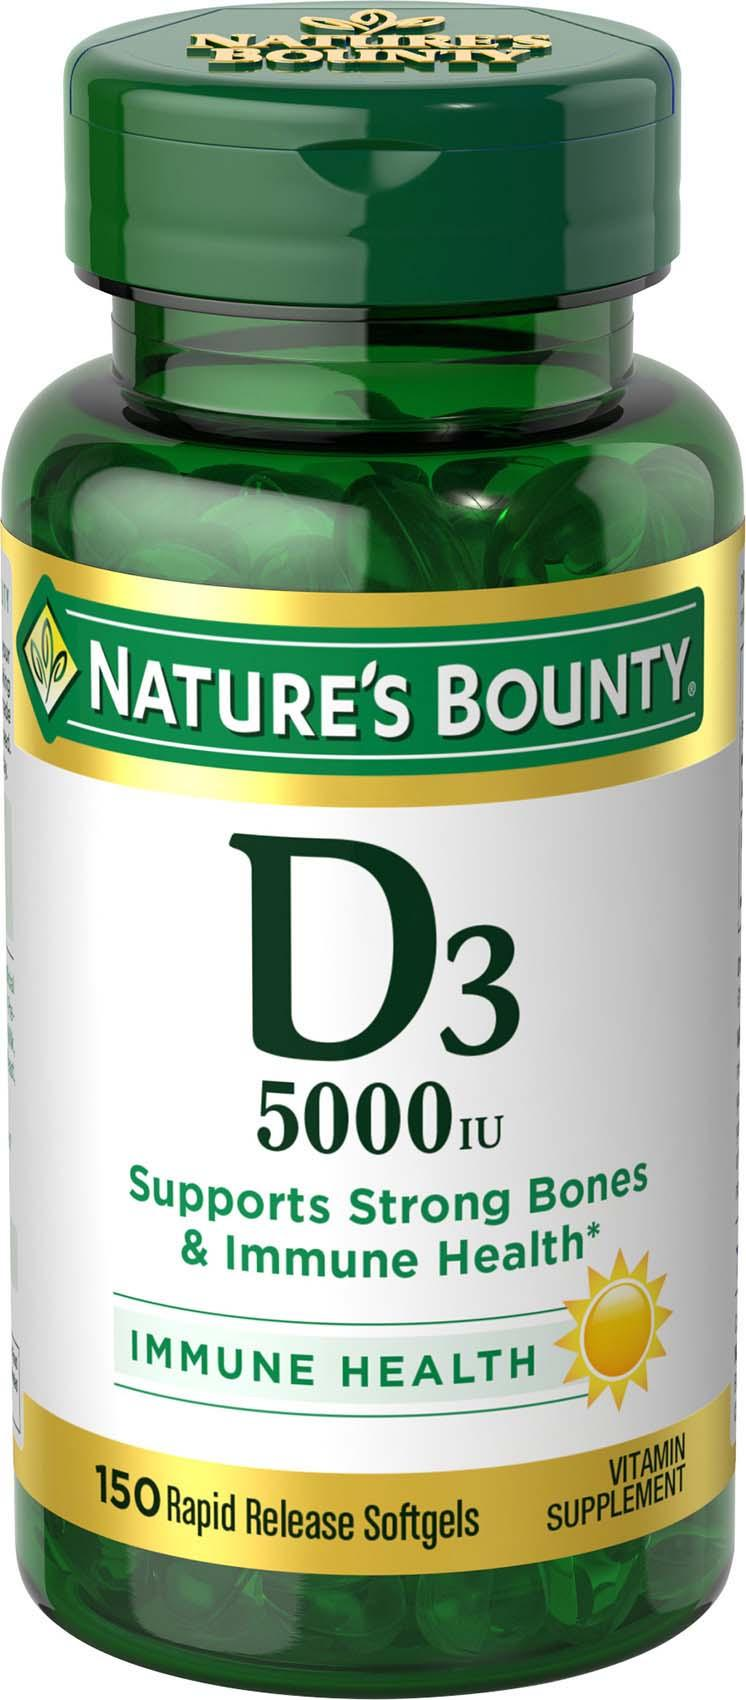 d3 bounty nature 5000 amazon strength softgels maximum iu ingredients liquid mg india low prices natures rapid quickly allow enter